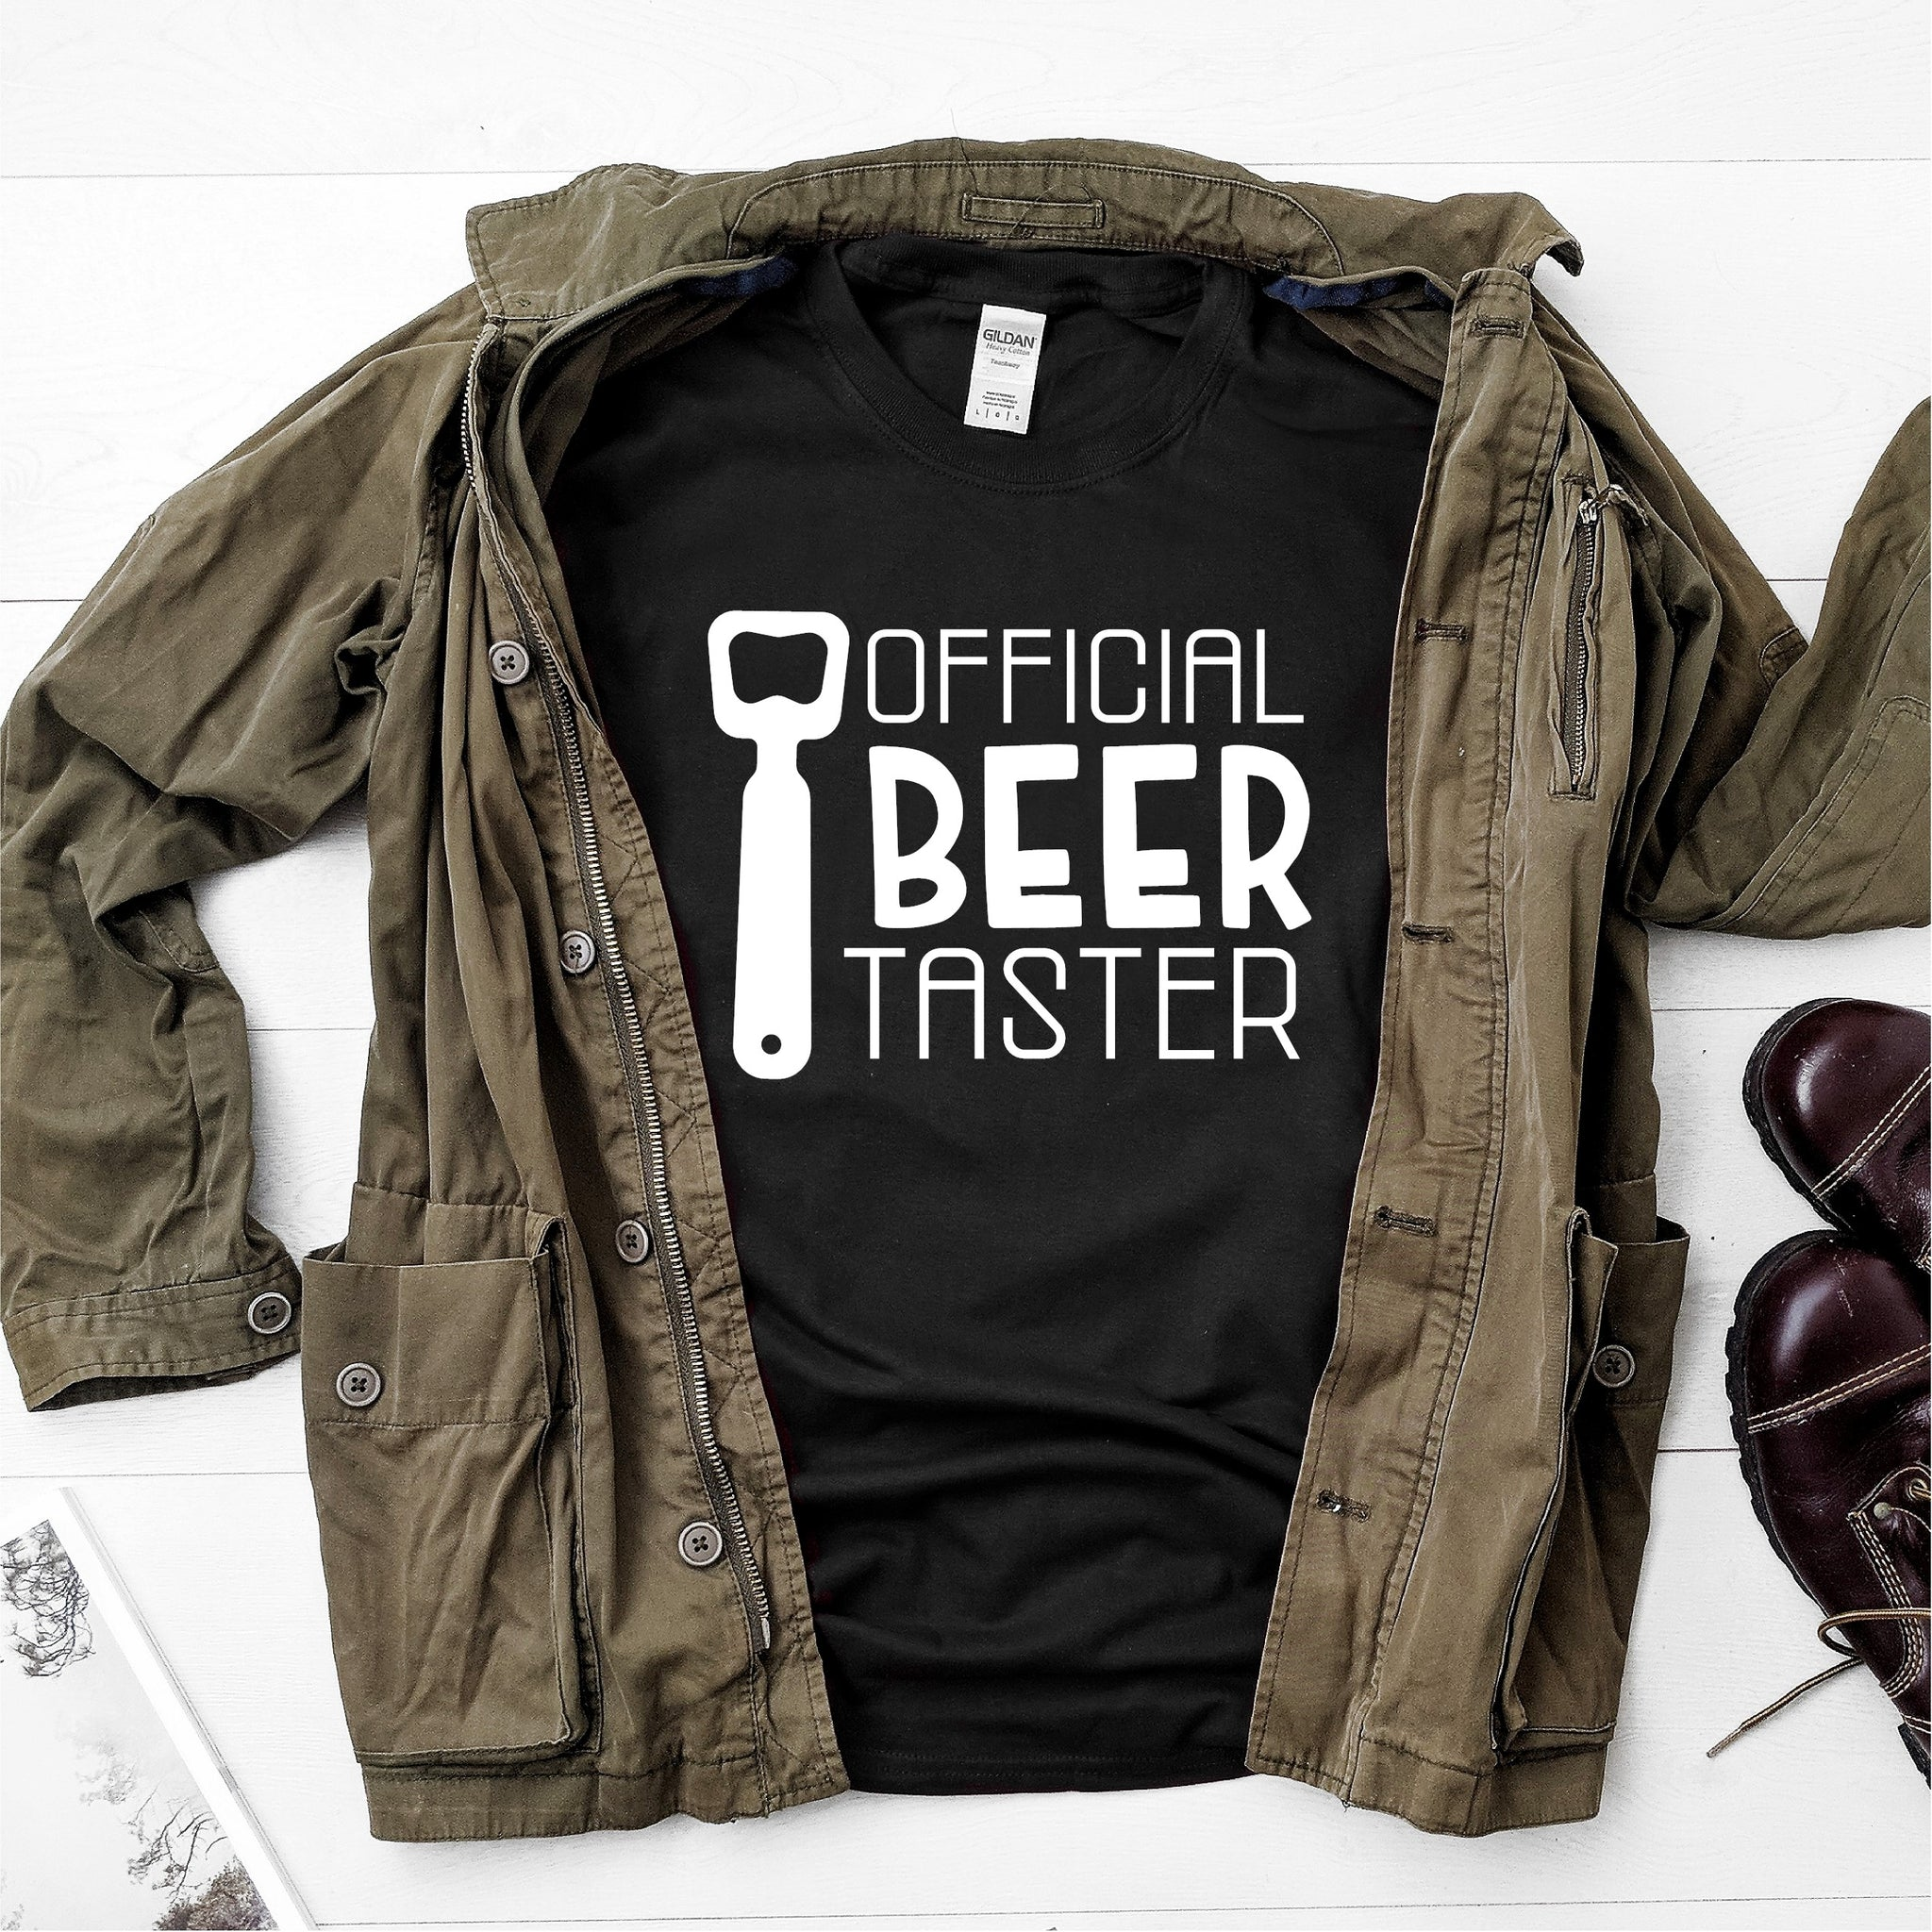 Official Beer Taster-  Ultra Cotton Short Sleeve T-Shirt - DFHM34